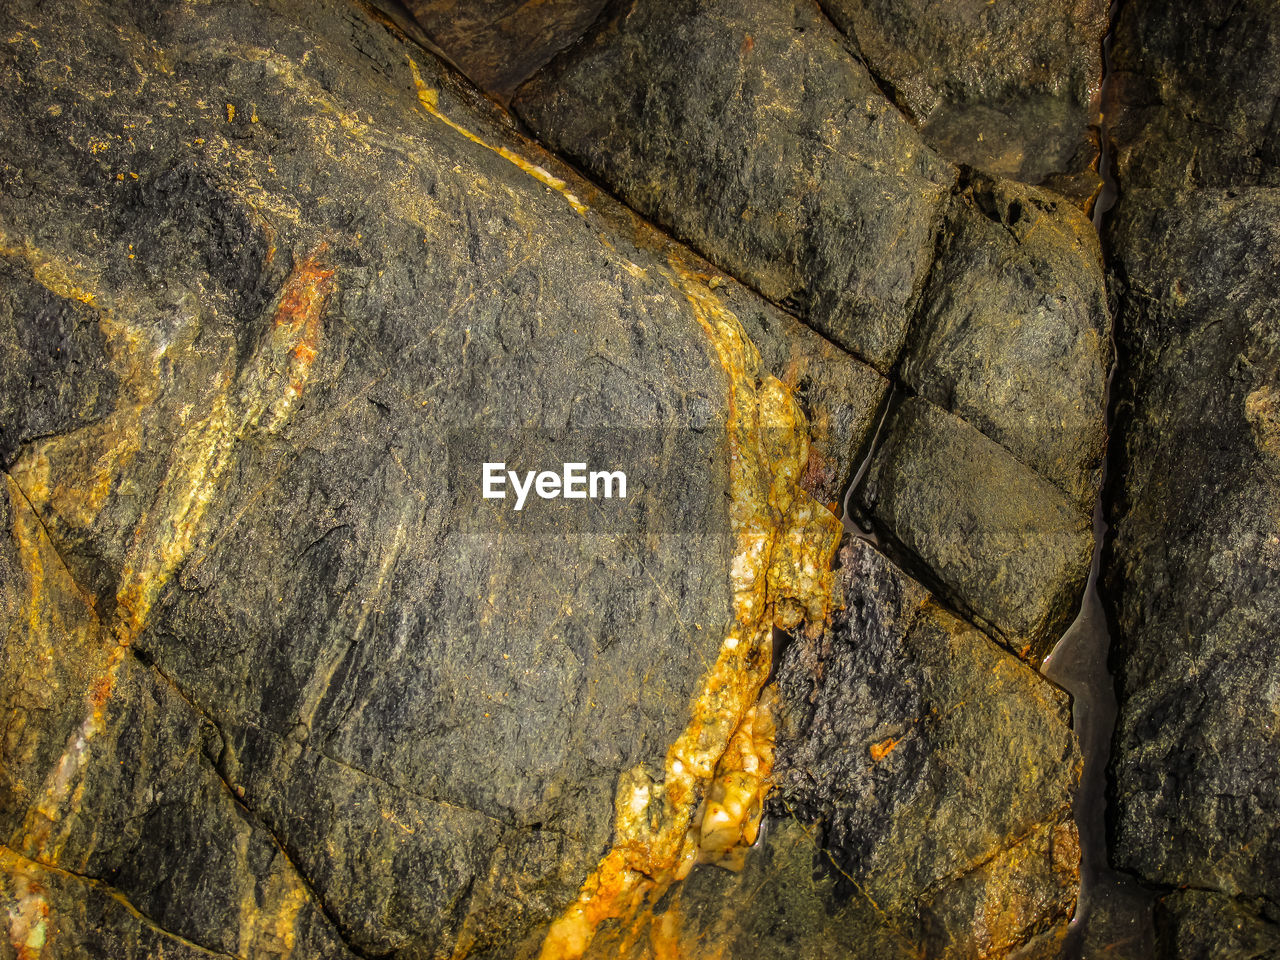 textured, rock - object, geology, outdoors, no people, nature, lava, day, close-up, molten, rock face